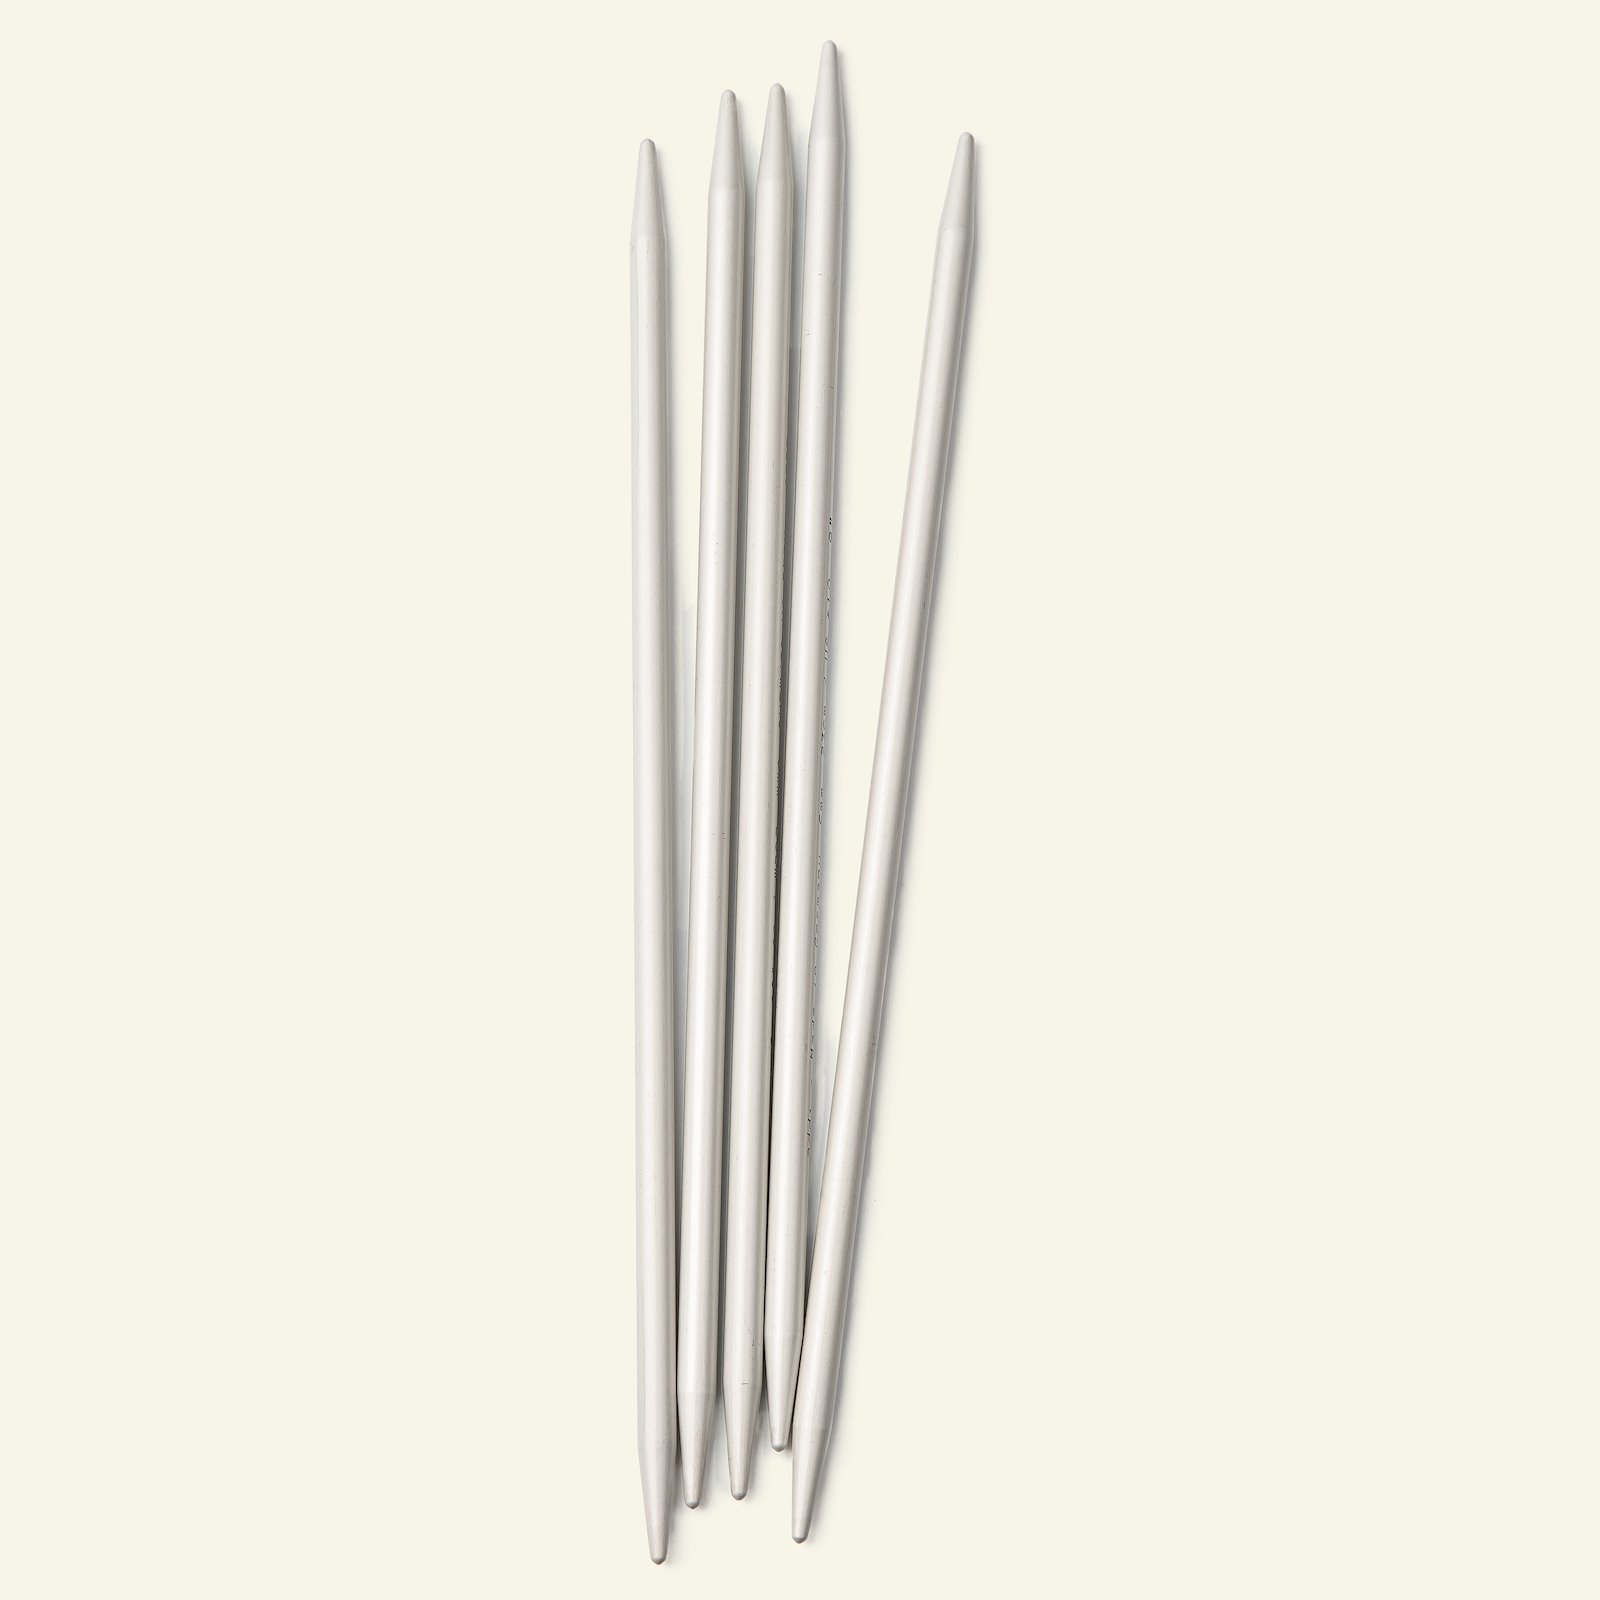 Addi double pointed needle 23cm 6mm 83055_pack